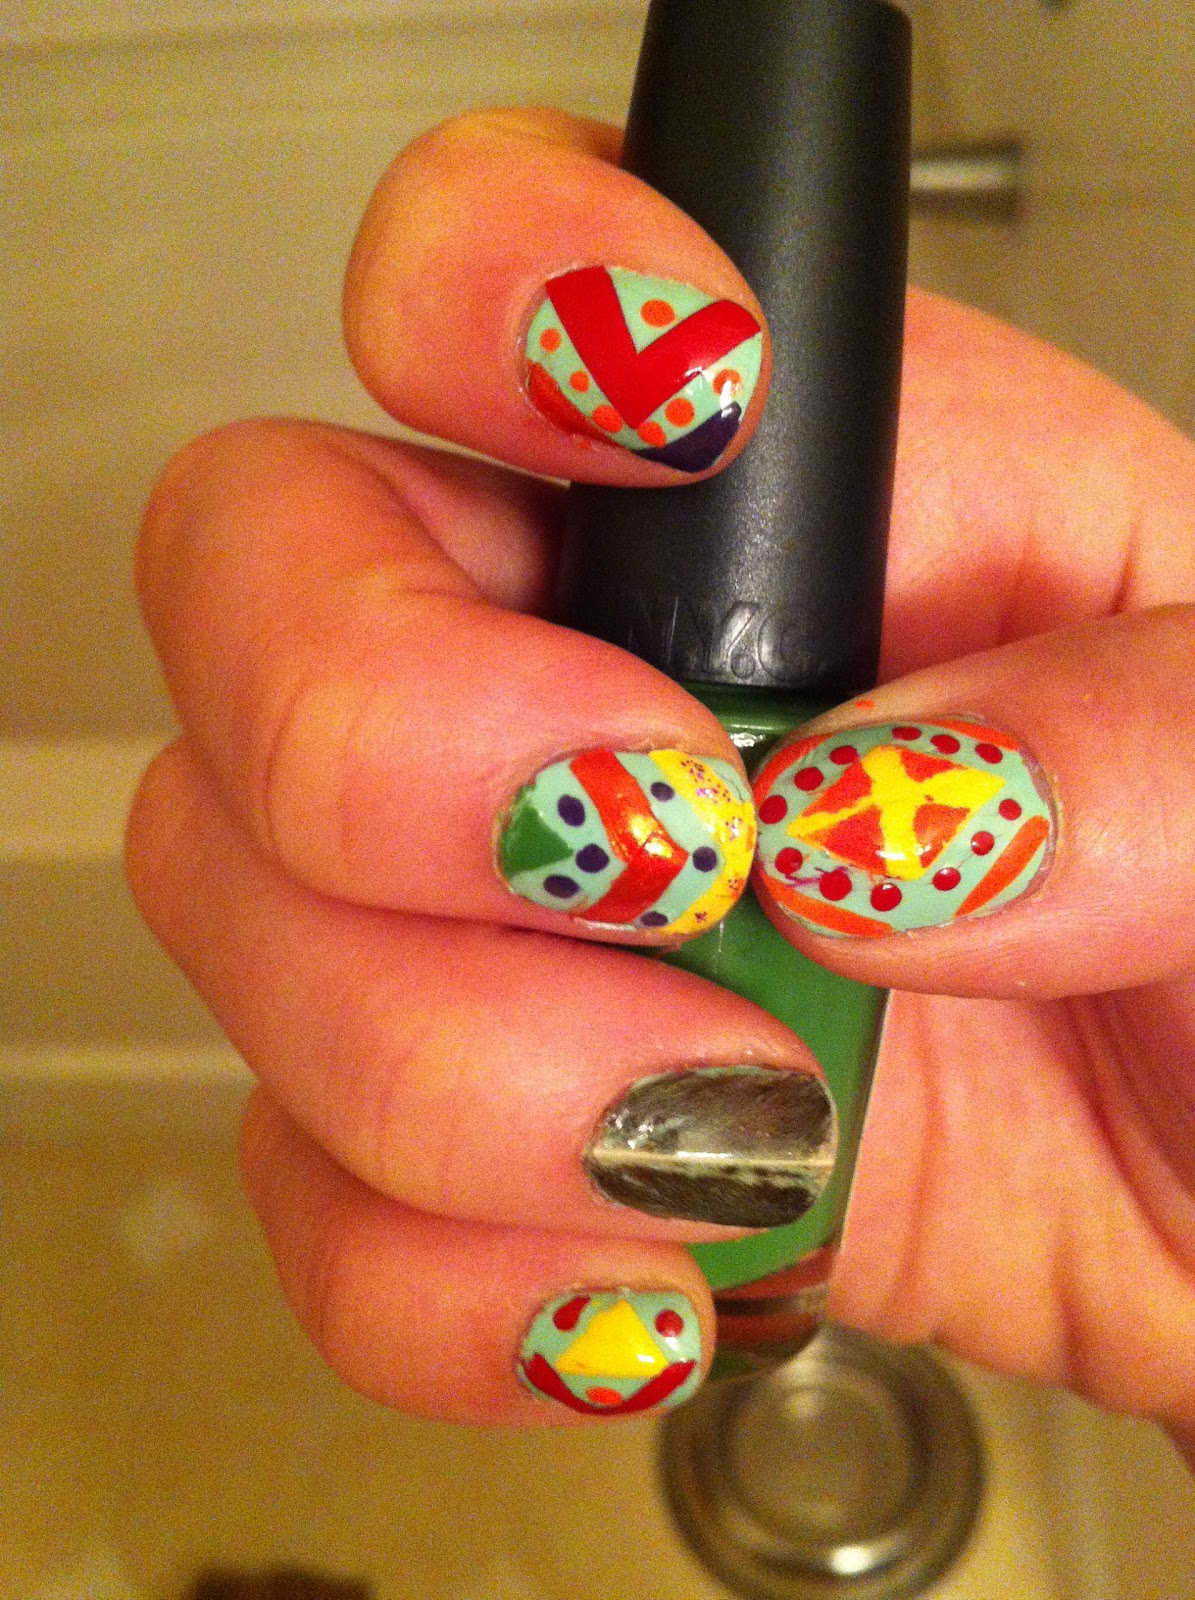 Pending Nail Consult: How to make your own nail art decals